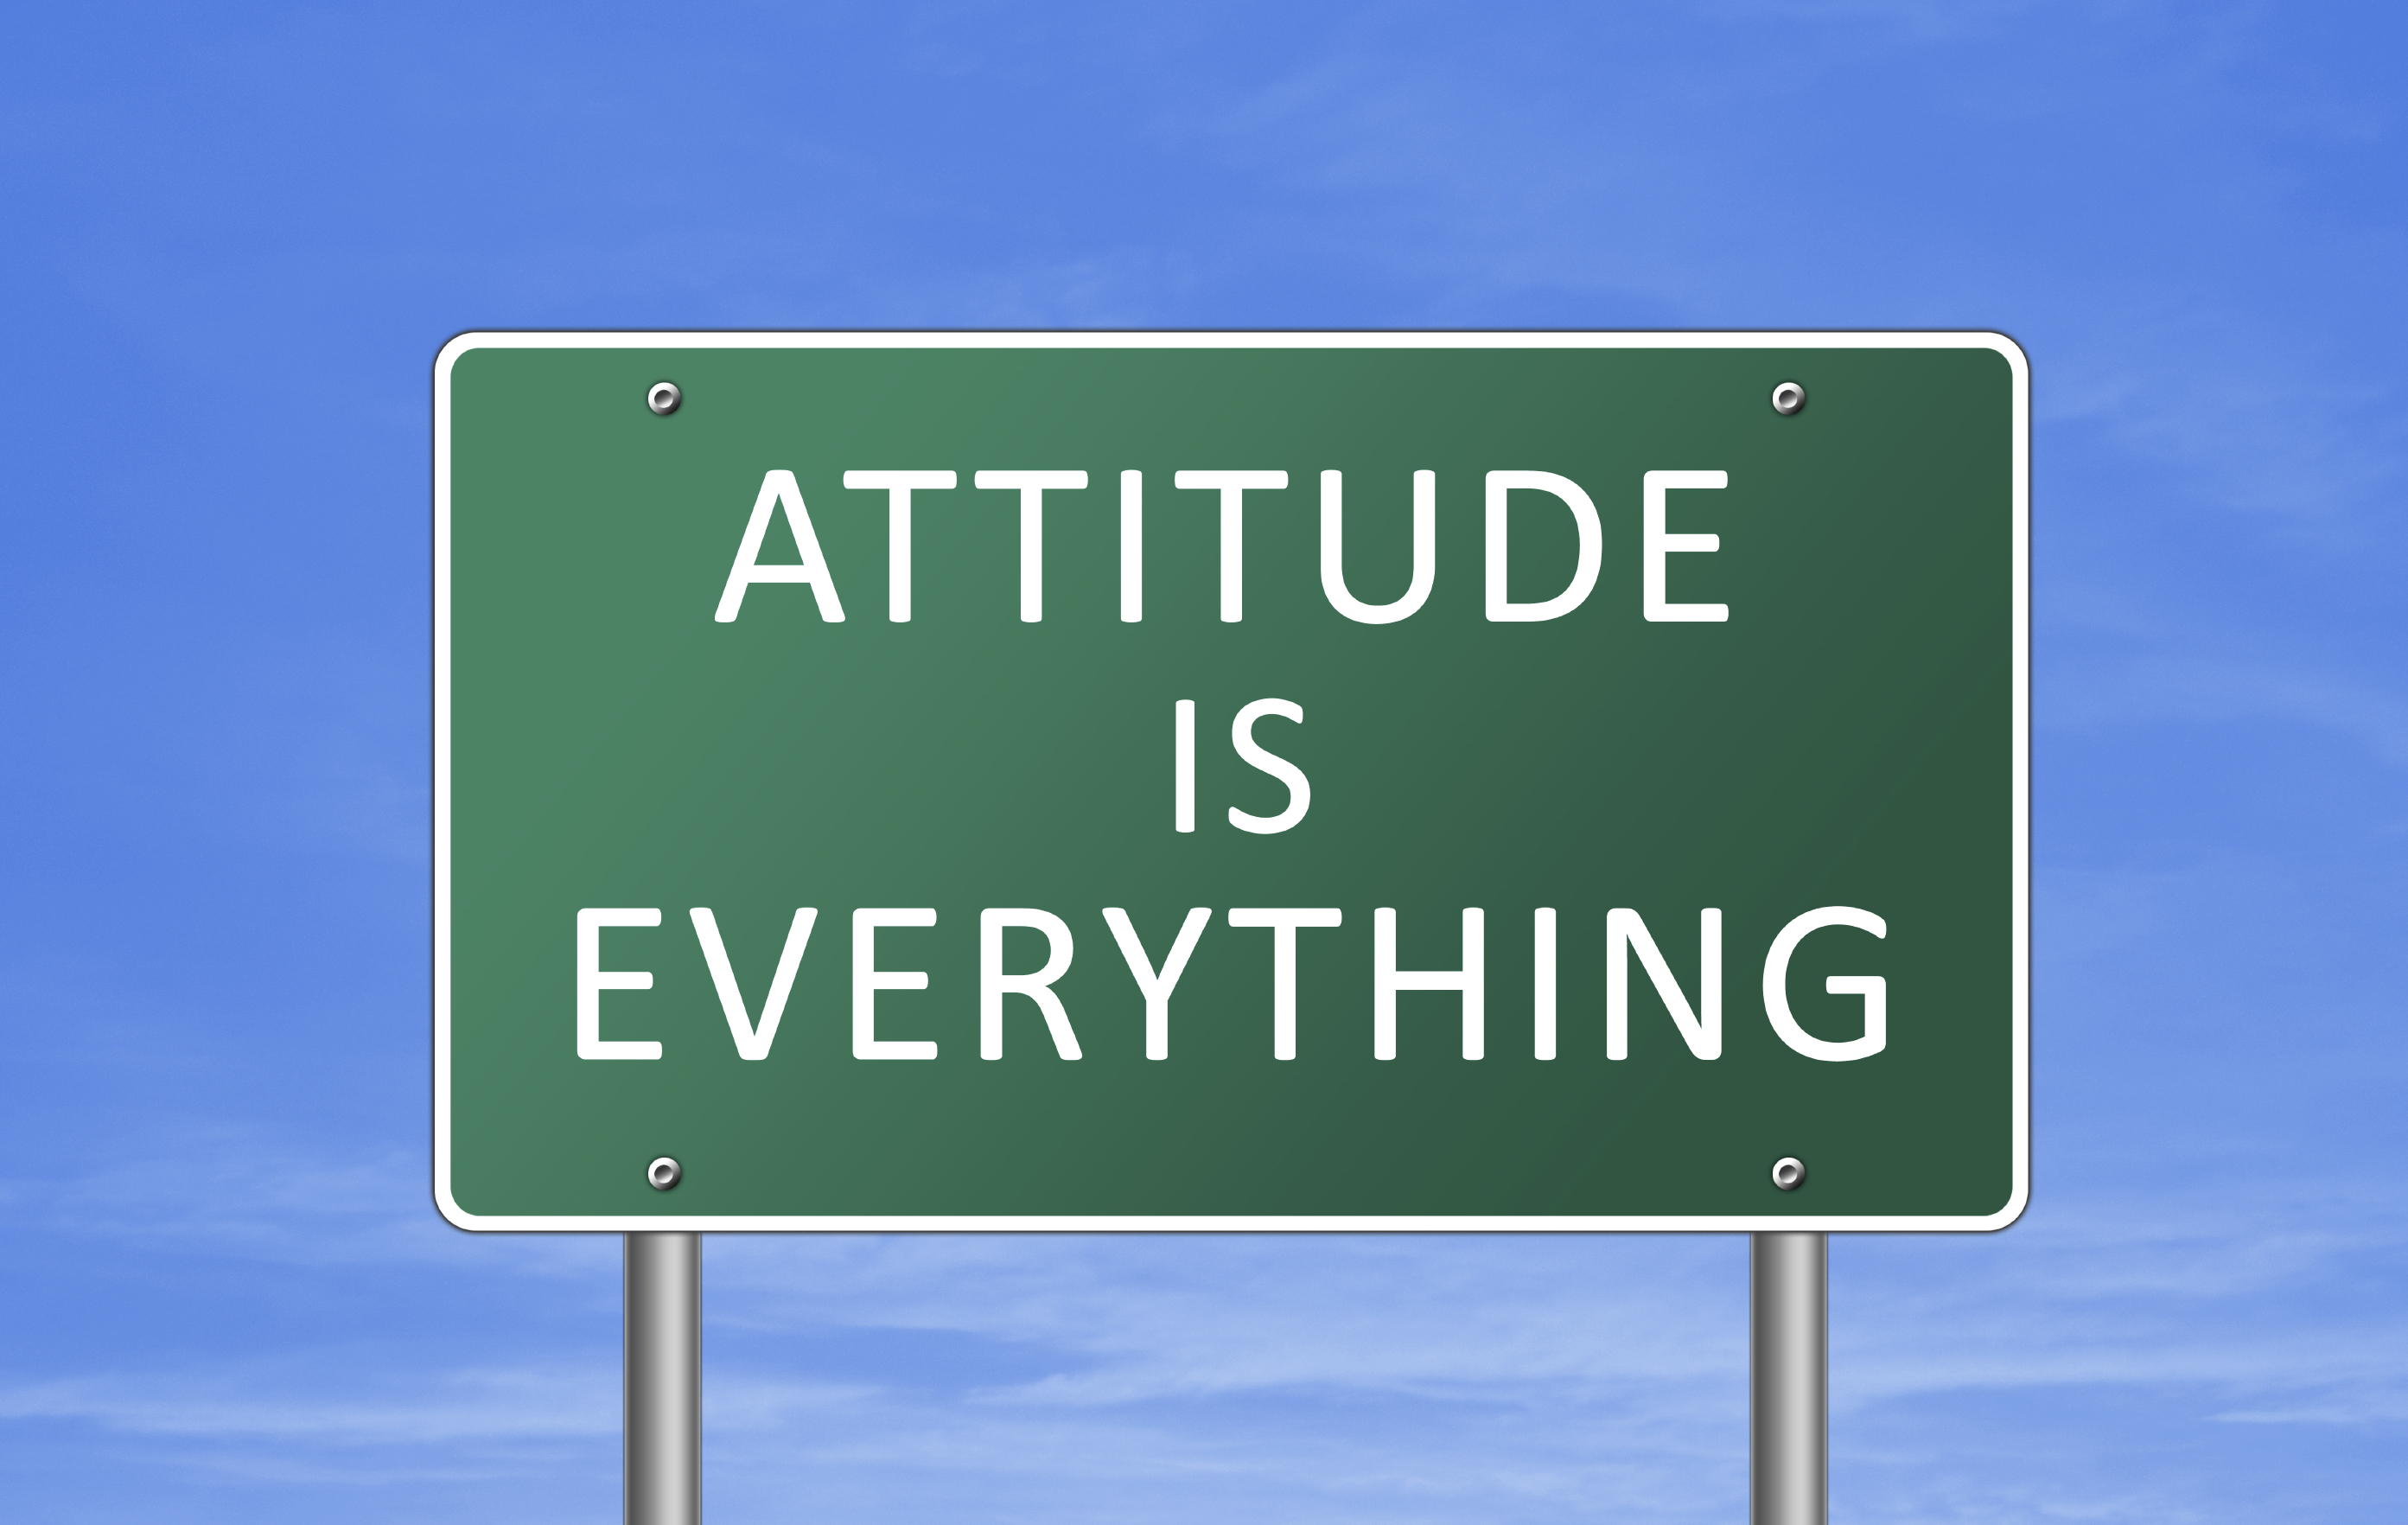 Attitude is everything - road sign concept